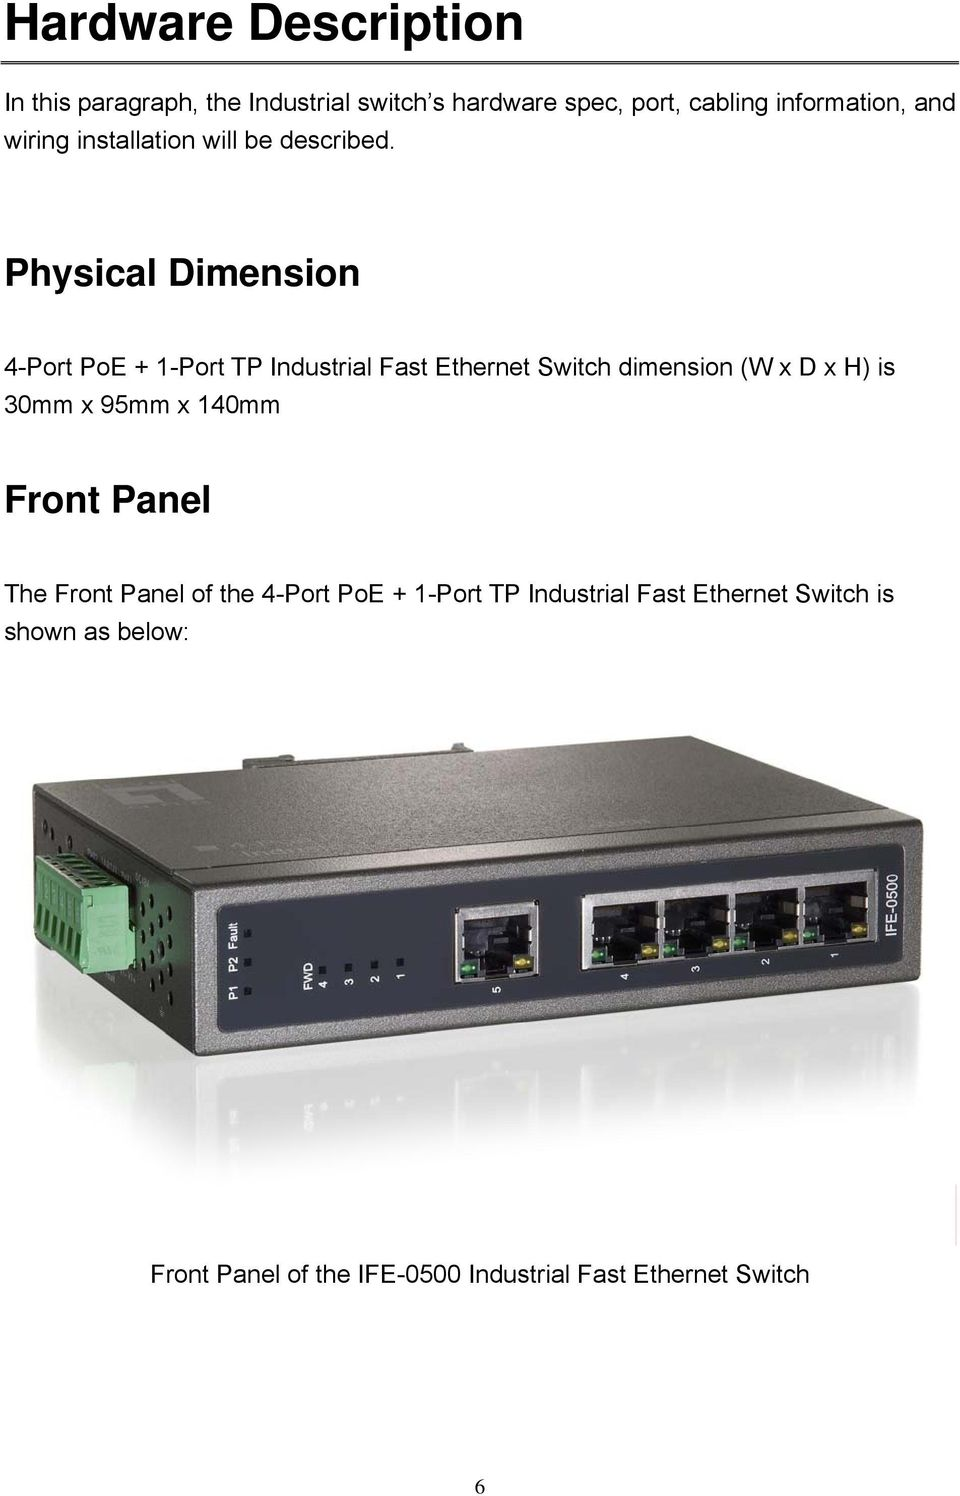 Physical Dimension 4-Port PoE + 1-Port TP Industrial Fast Ethernet Switch dimension (W x D x H) is 30mm x